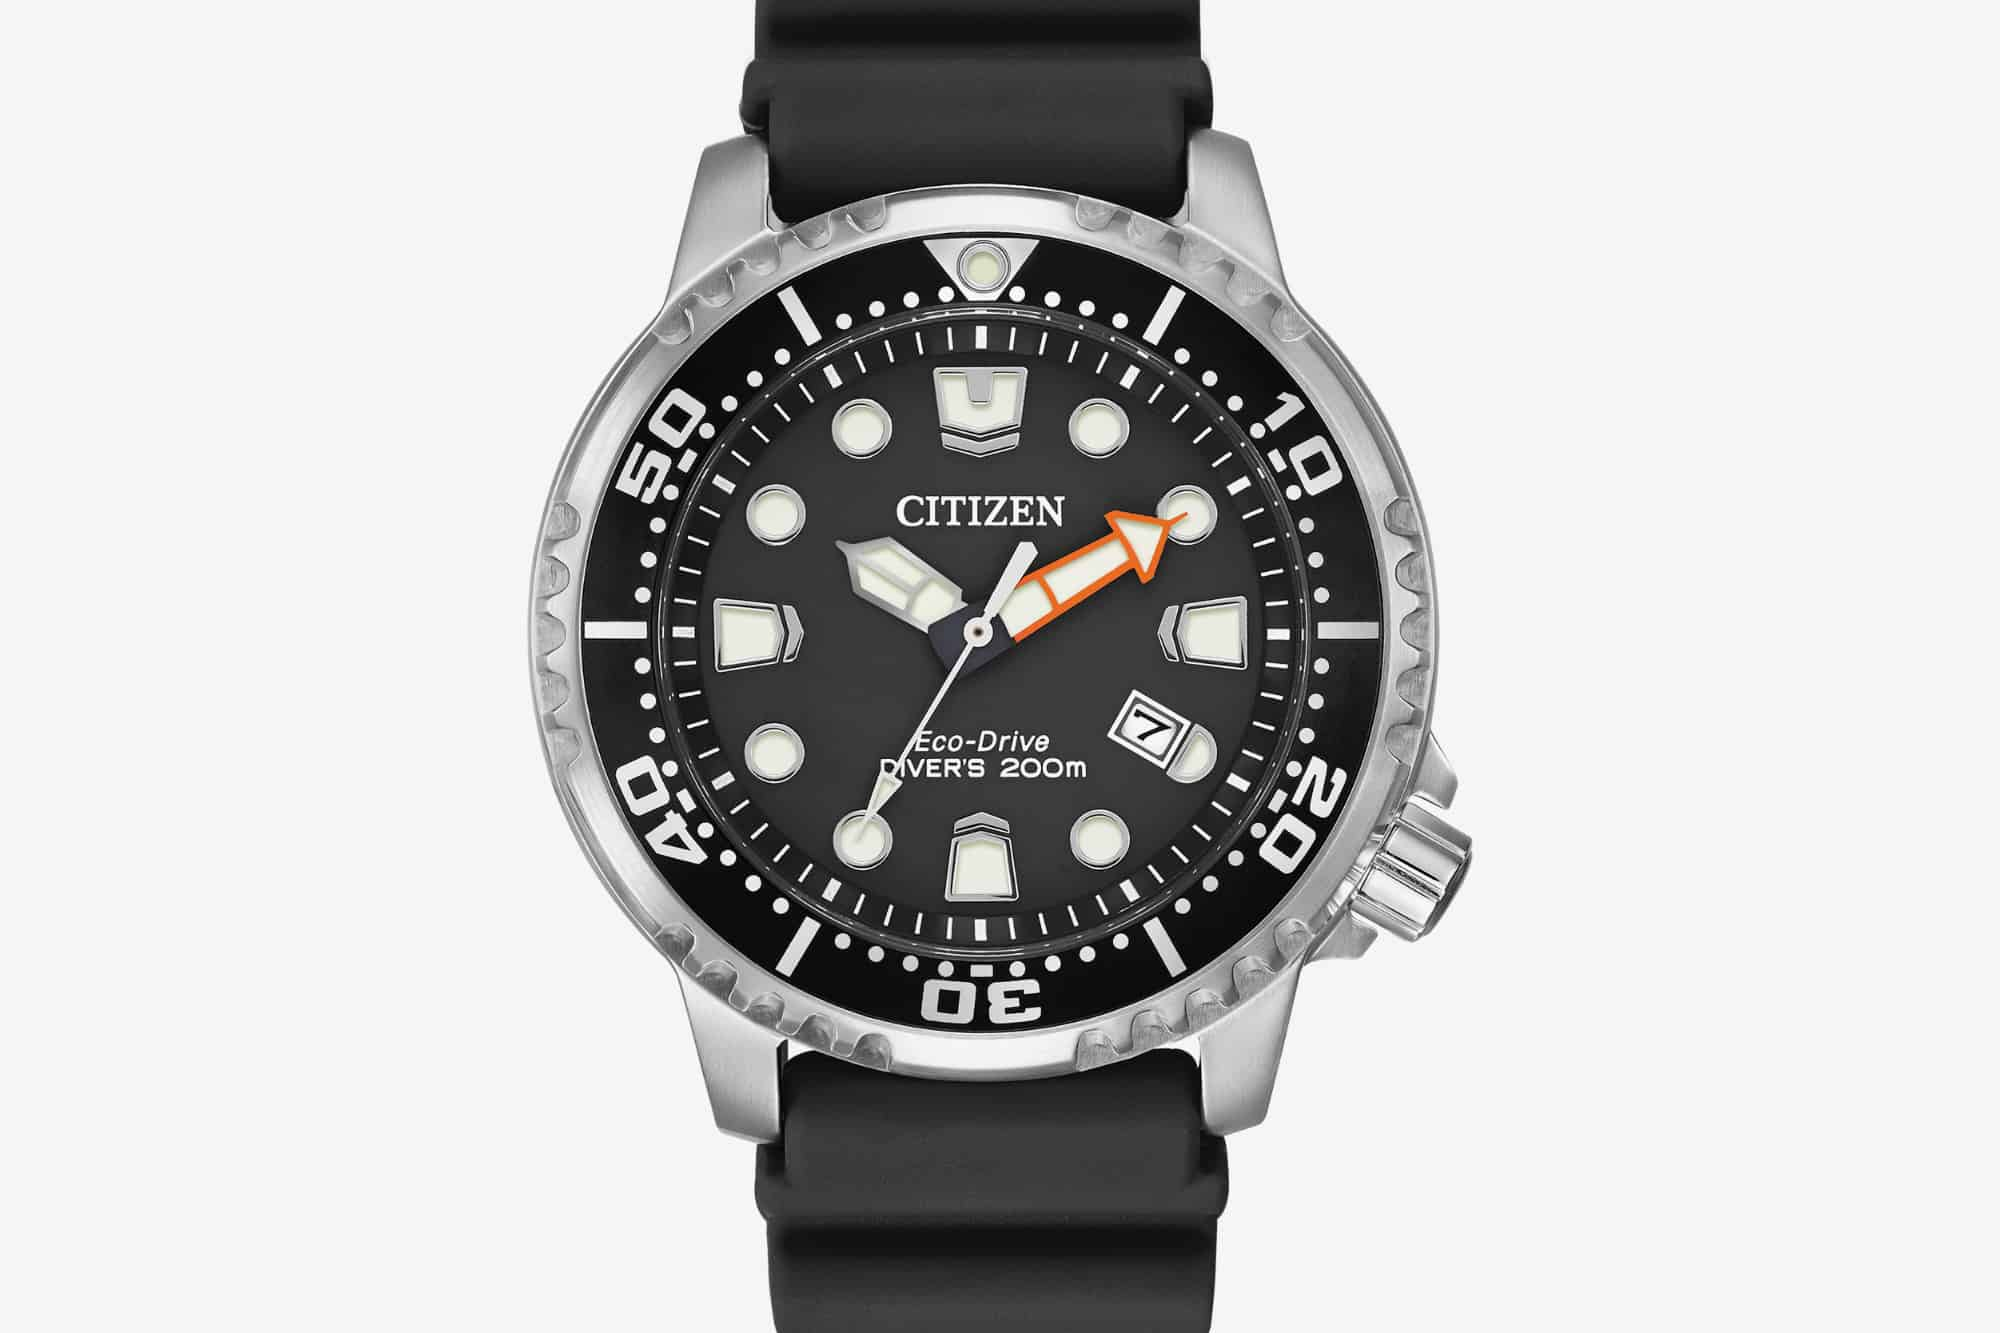 Image of a citizen eco drive technology watch